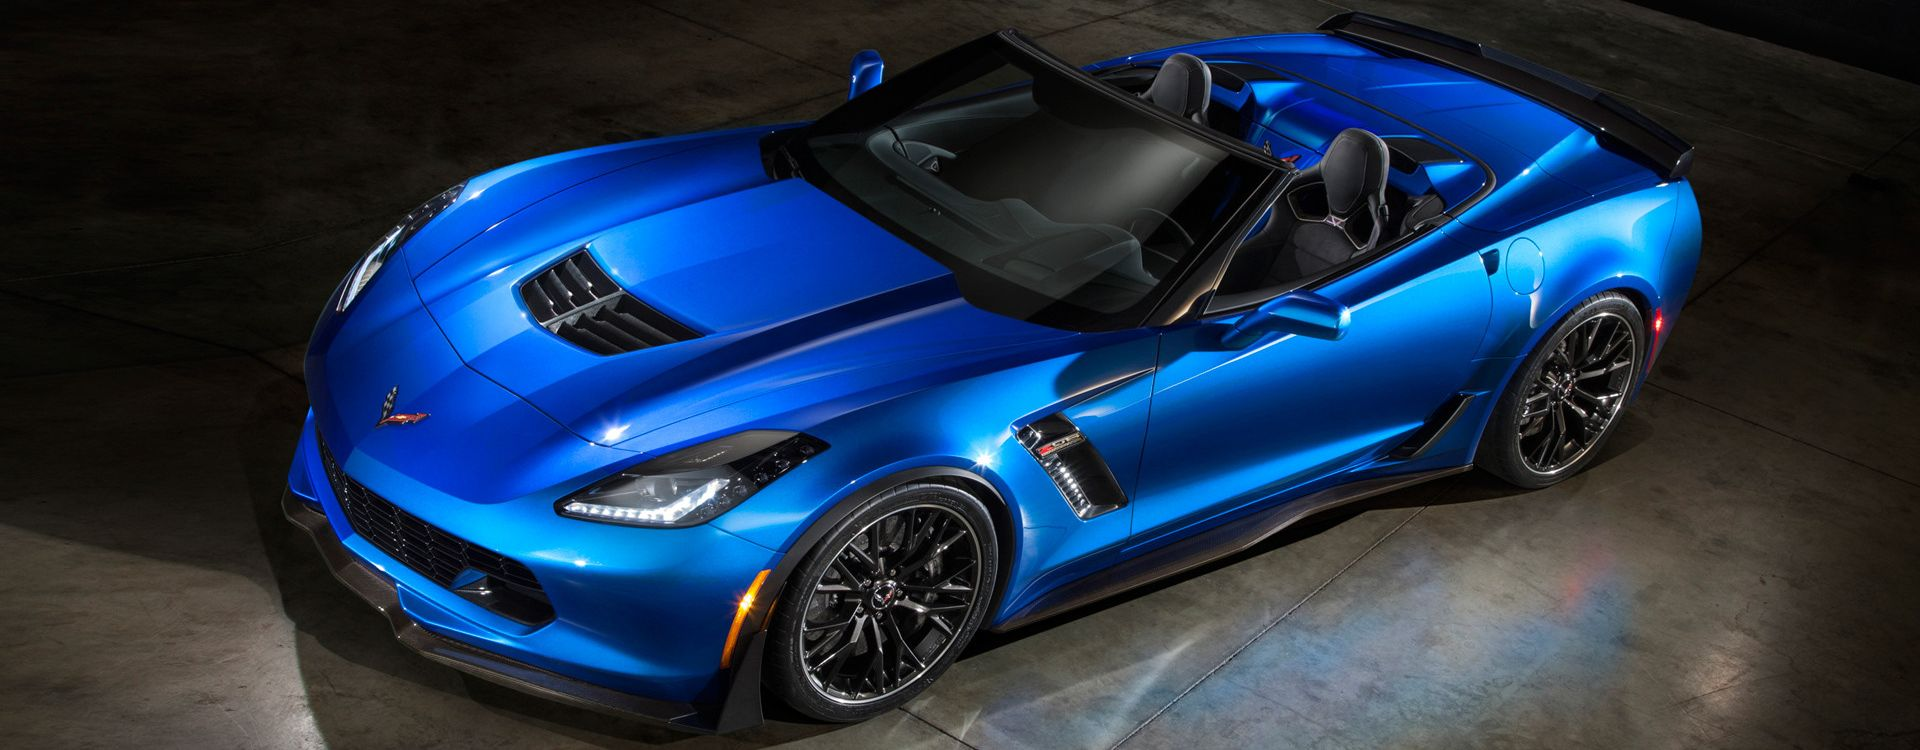 2015 Chevrolet Corvette Z06 Convertible 1 1920x1080